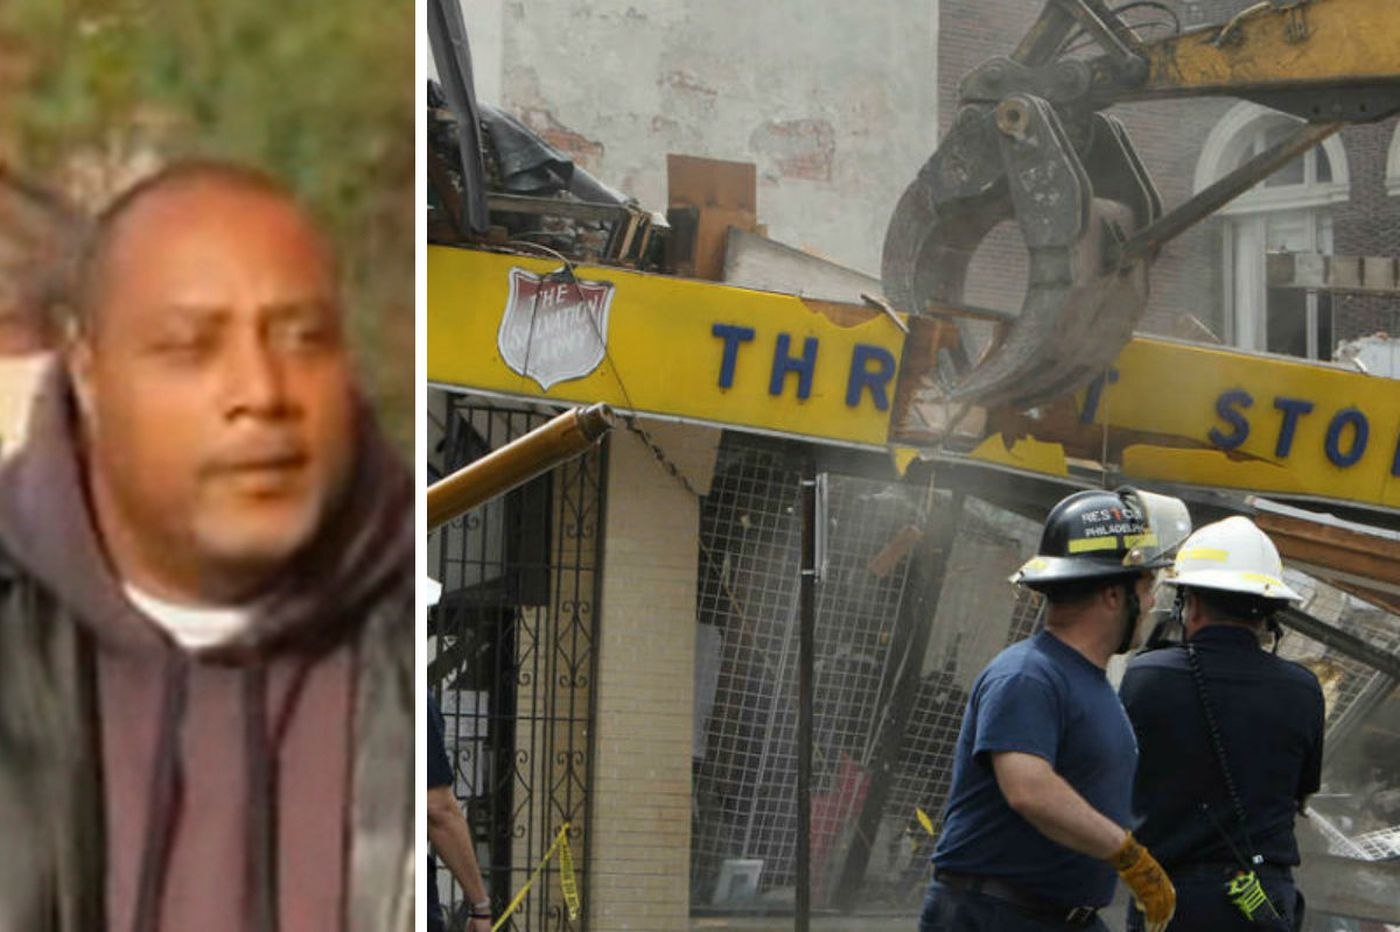 Contractor convicted of involuntary manslaughter in 2013 building collapse